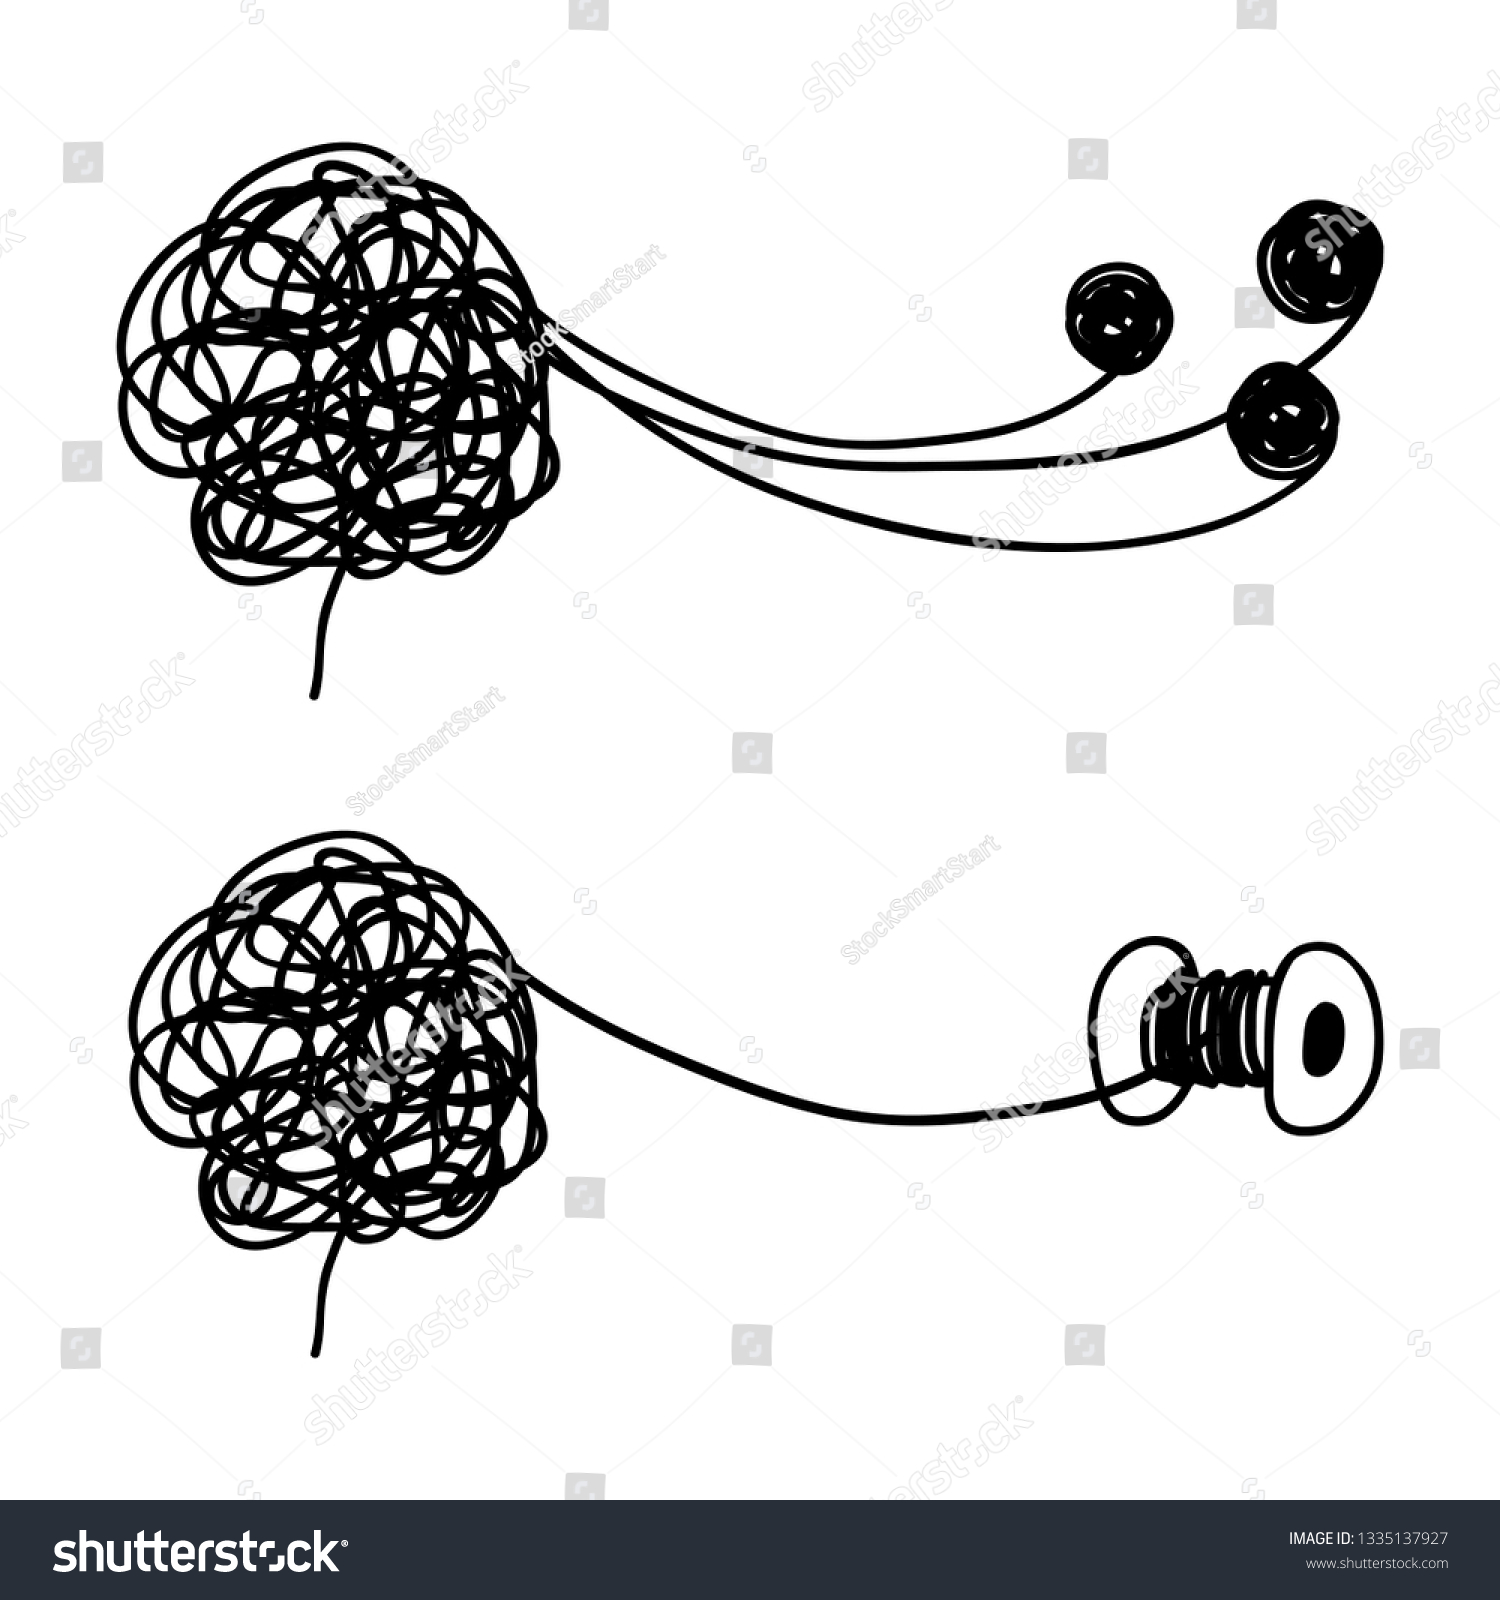 Tangled and untangled brain metaphor psychotherapy results vector concept illustration of untangle psychotherapy